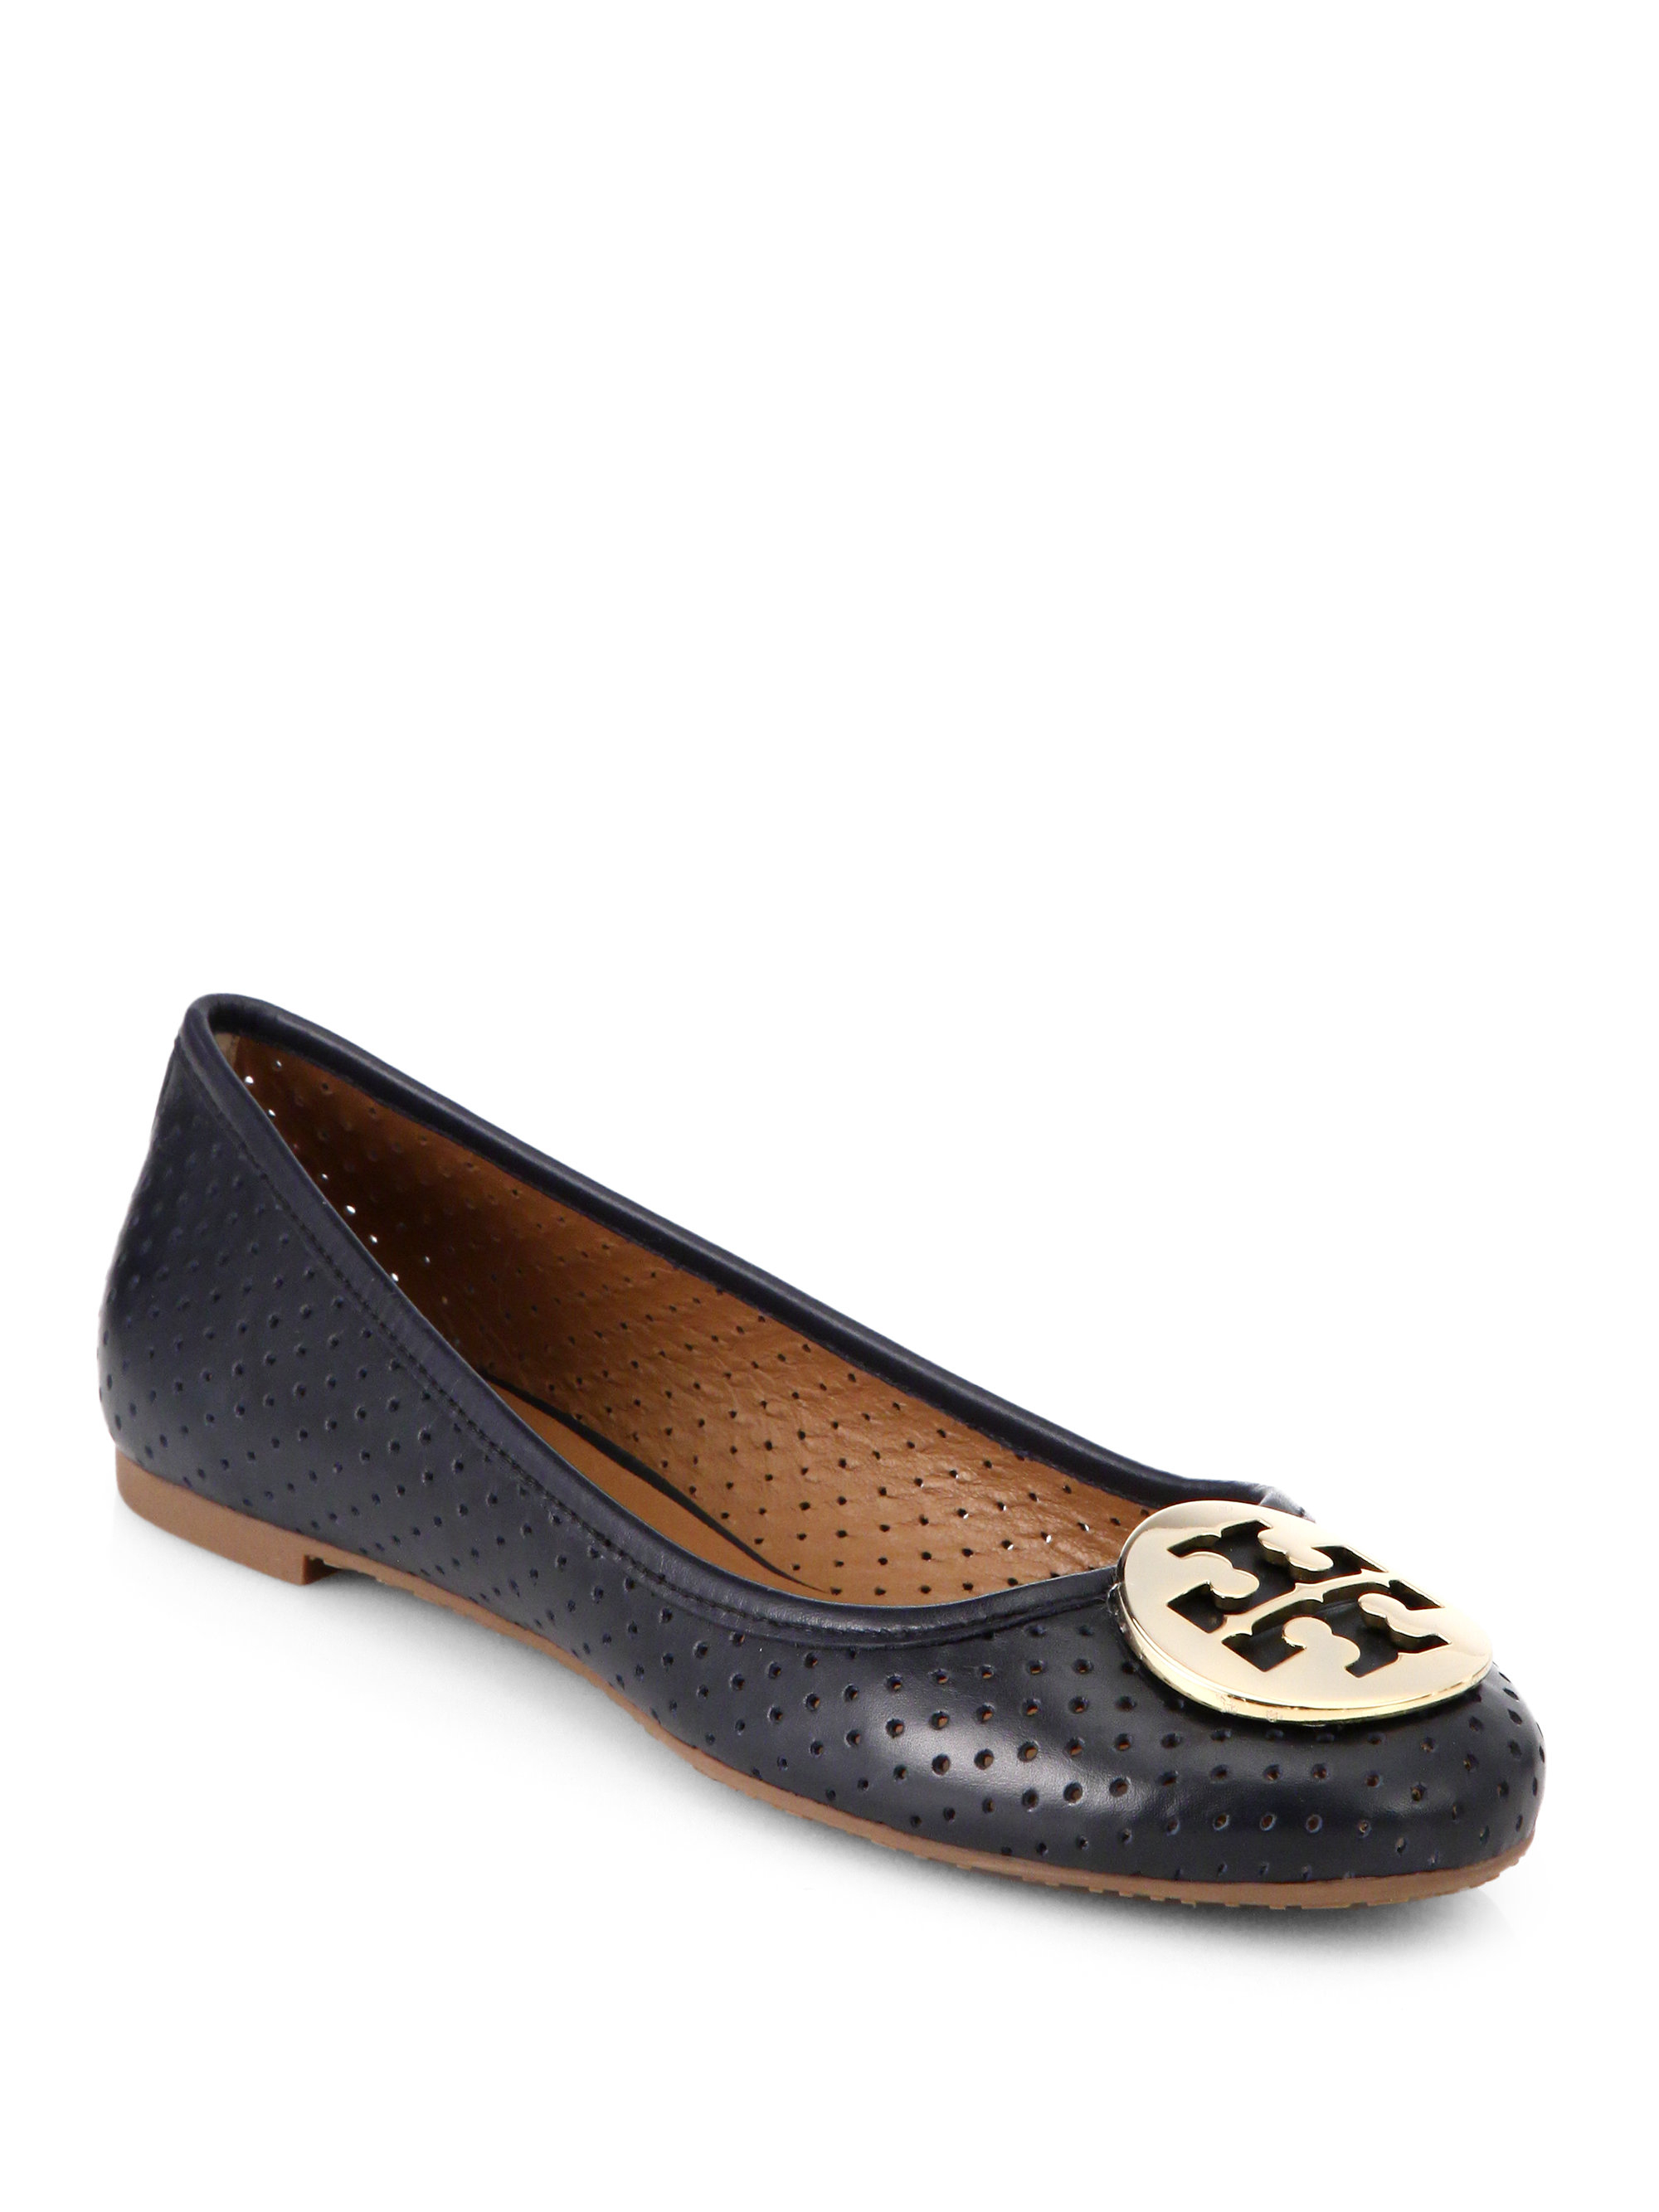 Tory Burch Reva Perforated Leather Ballet Flats In Blue Lyst